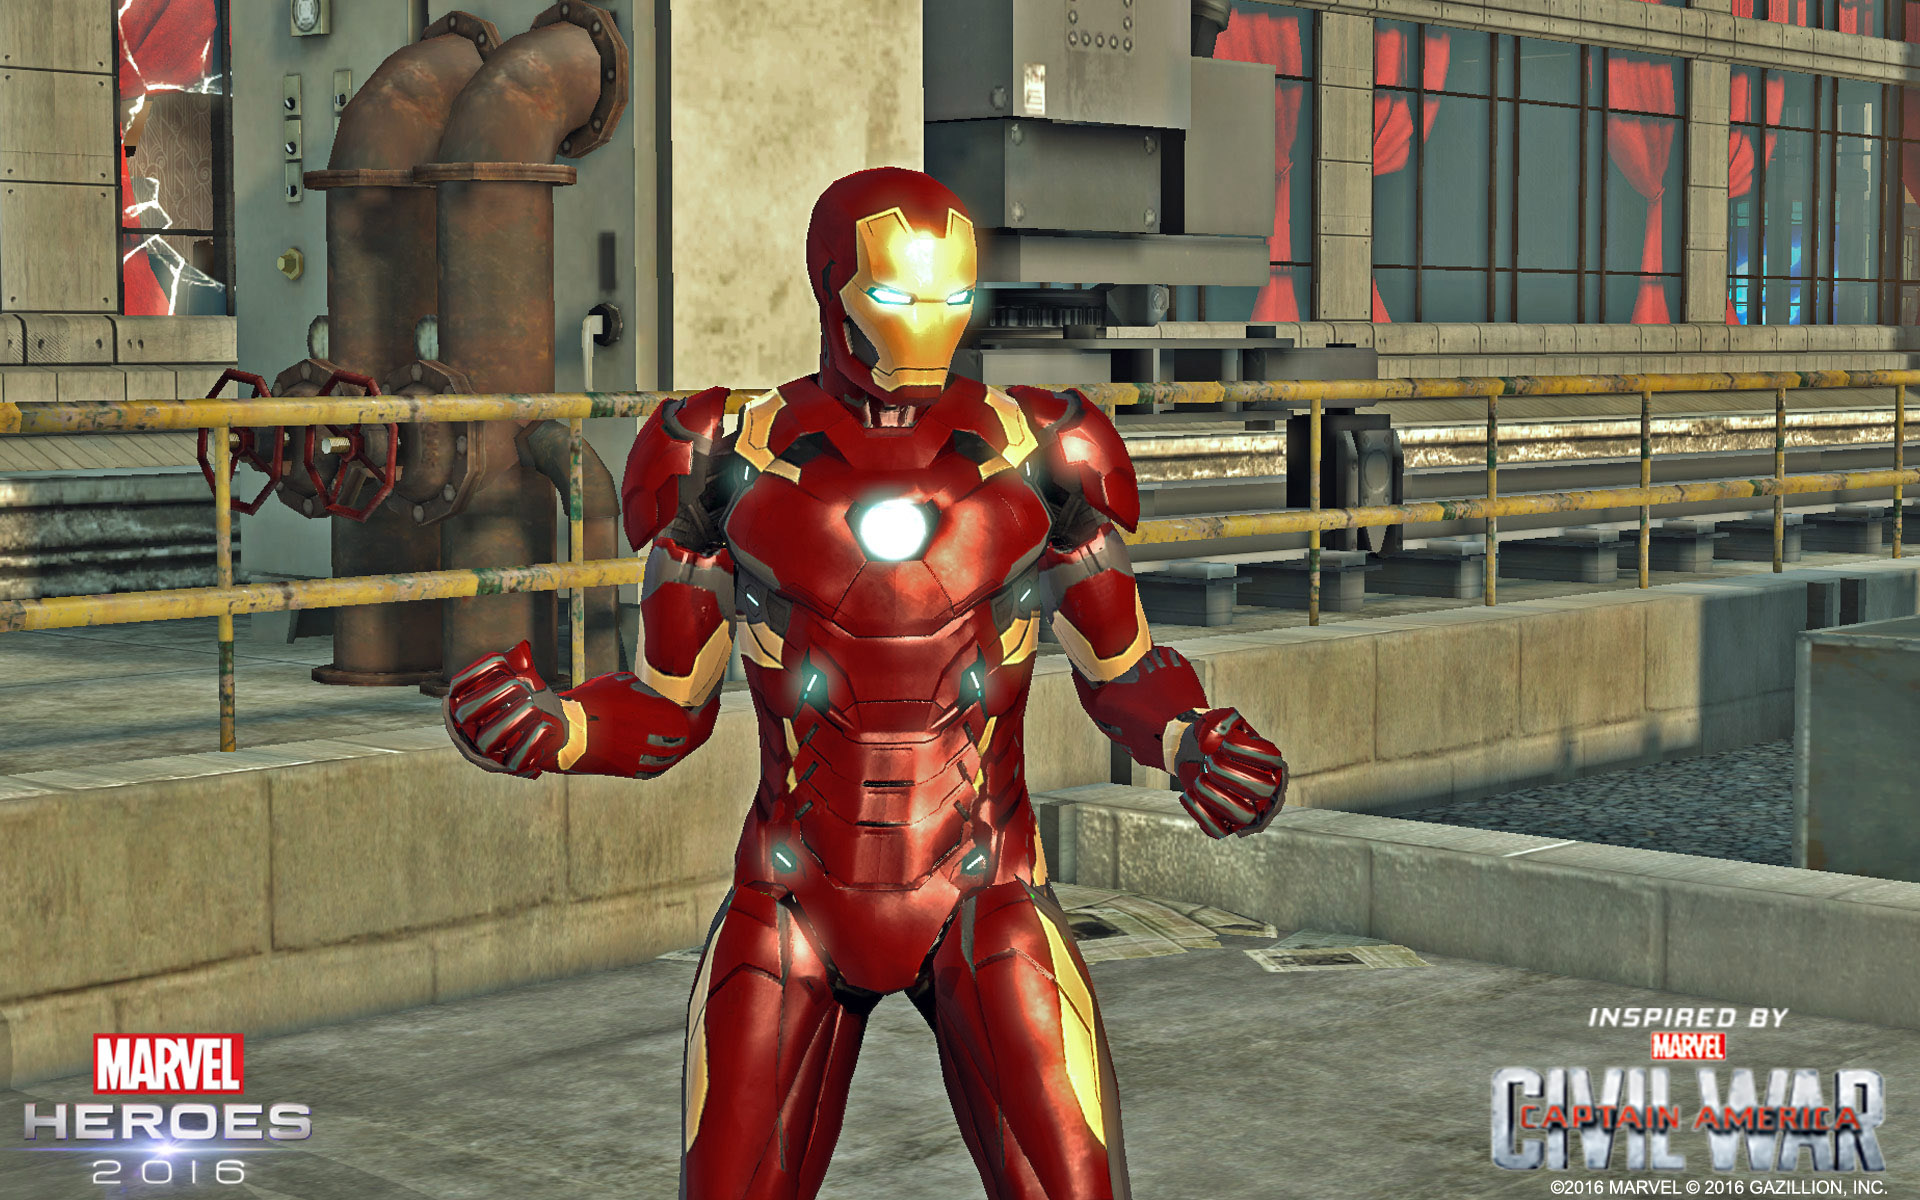 Marvel Heroes' Captain America: Civil War promo is live (so